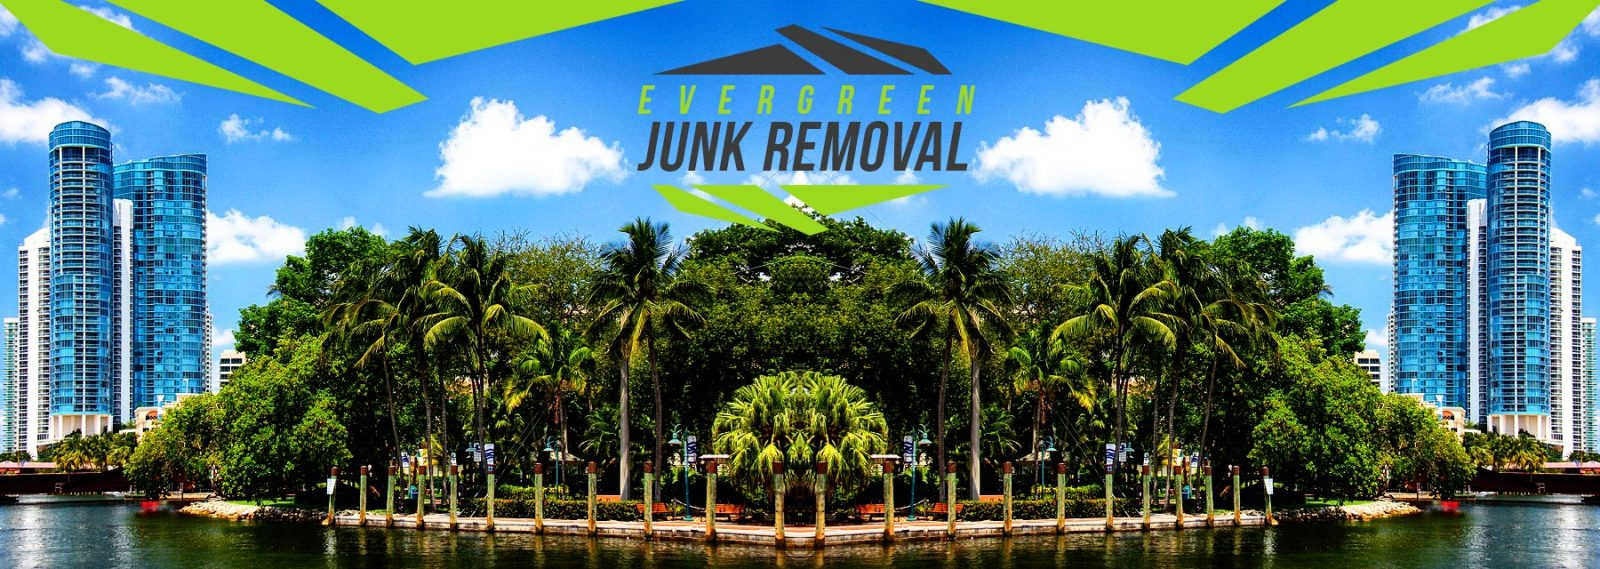 Sunrise Hot Tub Removal Company